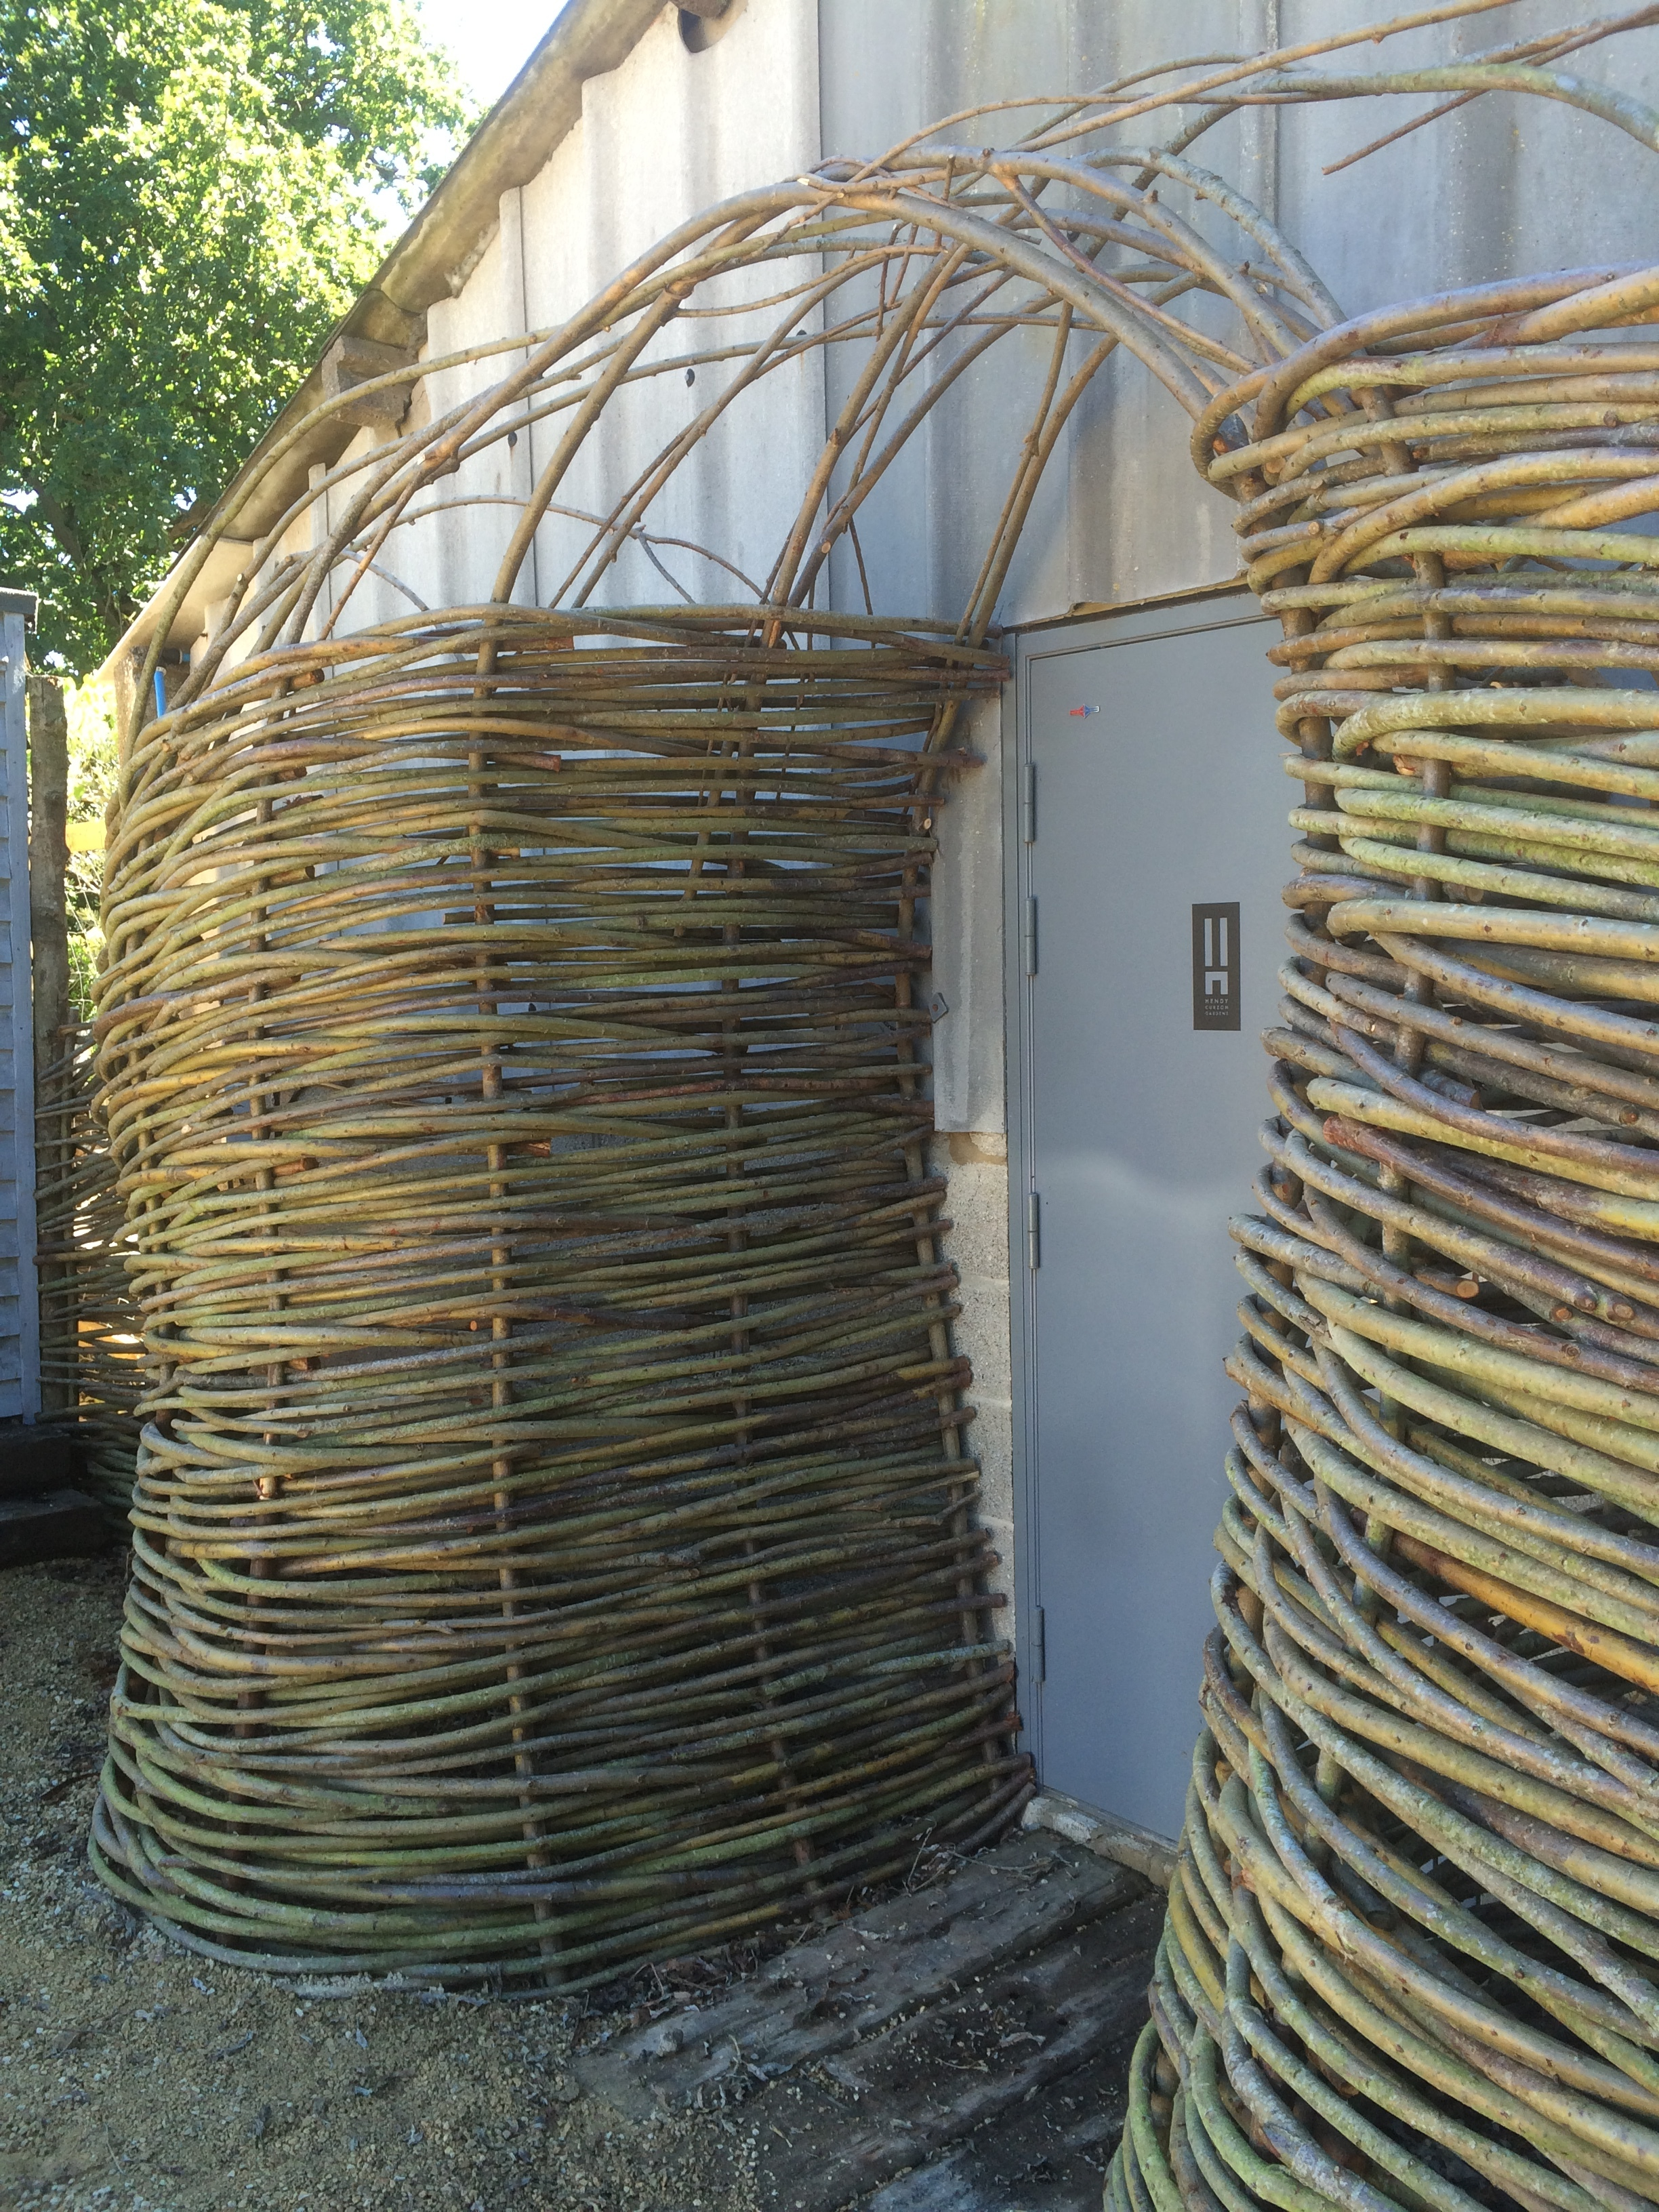 Statement woven willow entranceway